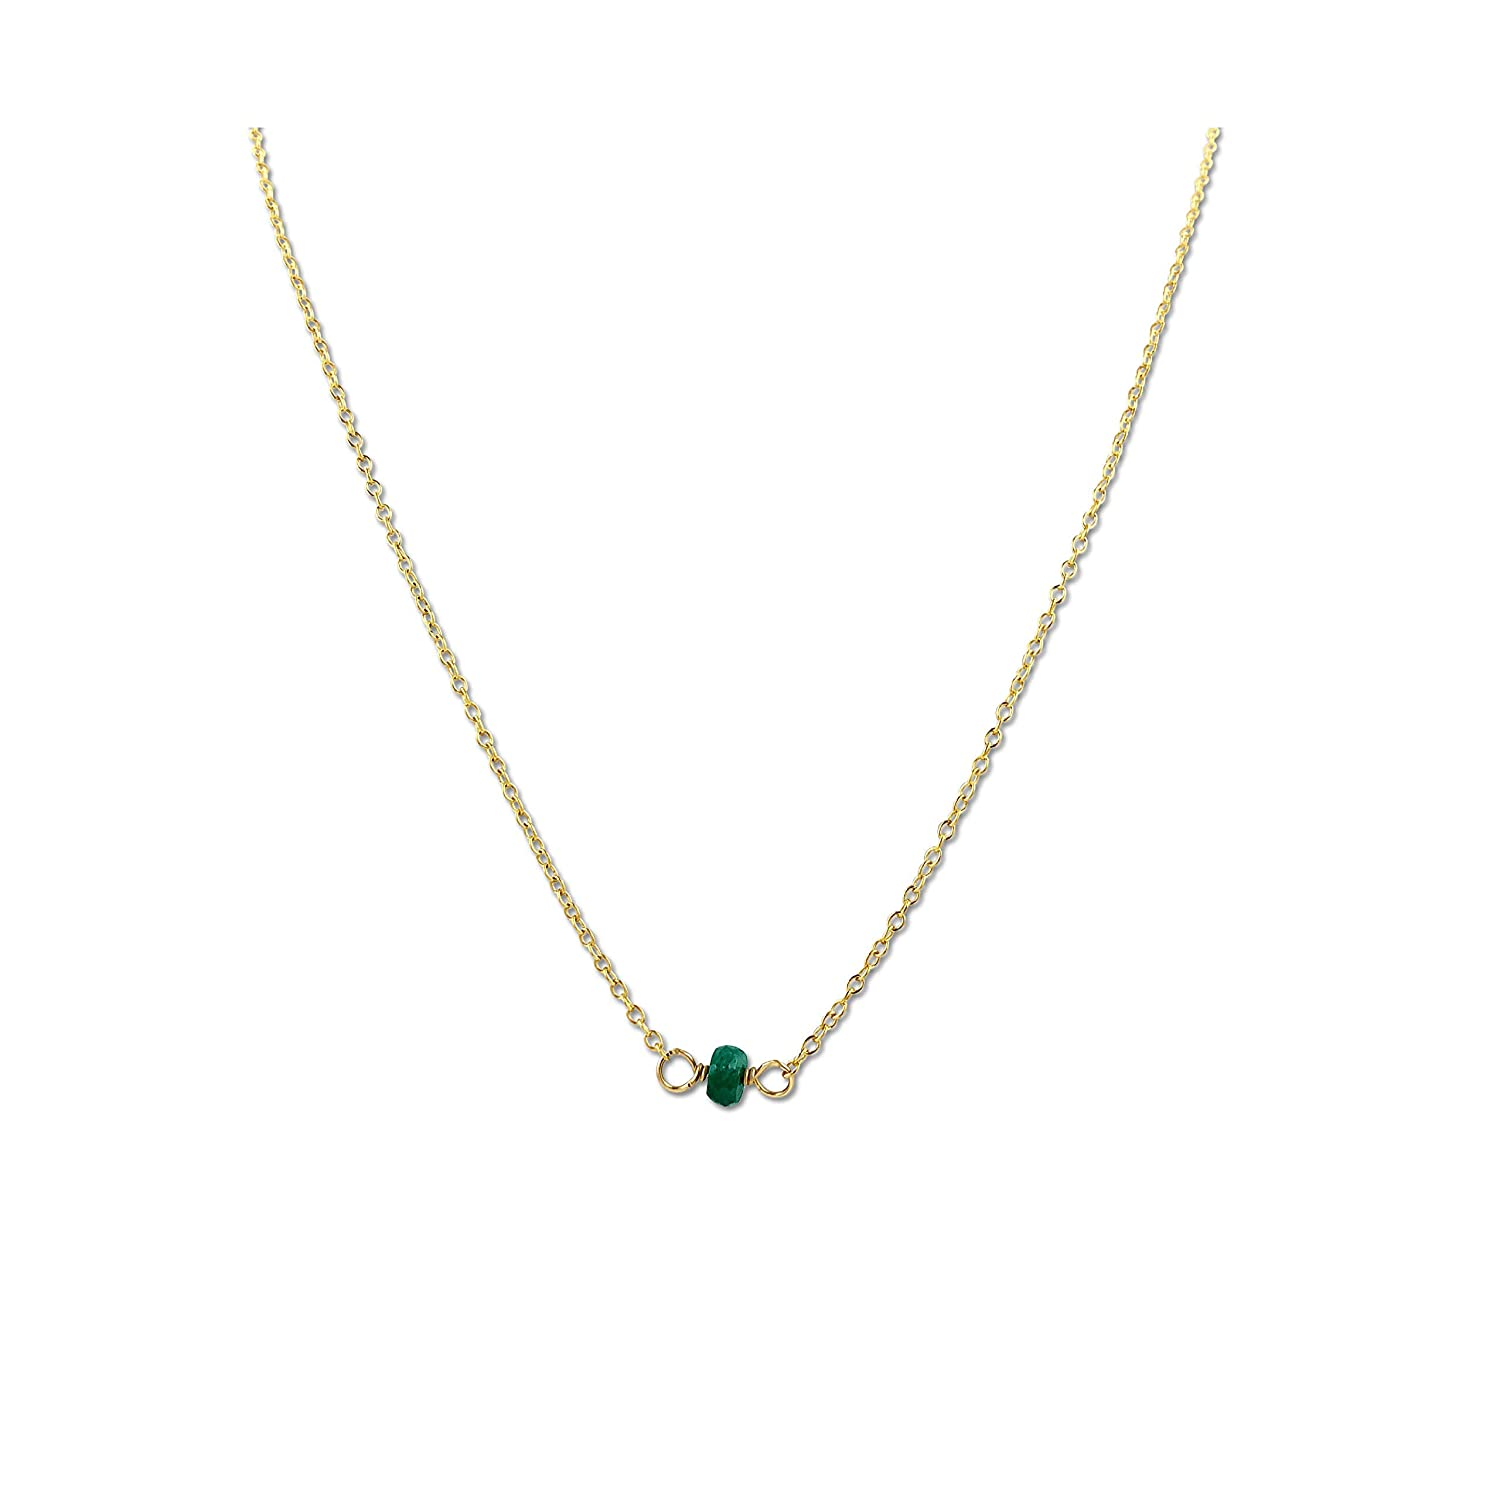 Handmade Gemstone Jewelry 14 Inches Long Yellow Gold Fill Gold Emerald Choker Necklace May Birthstone